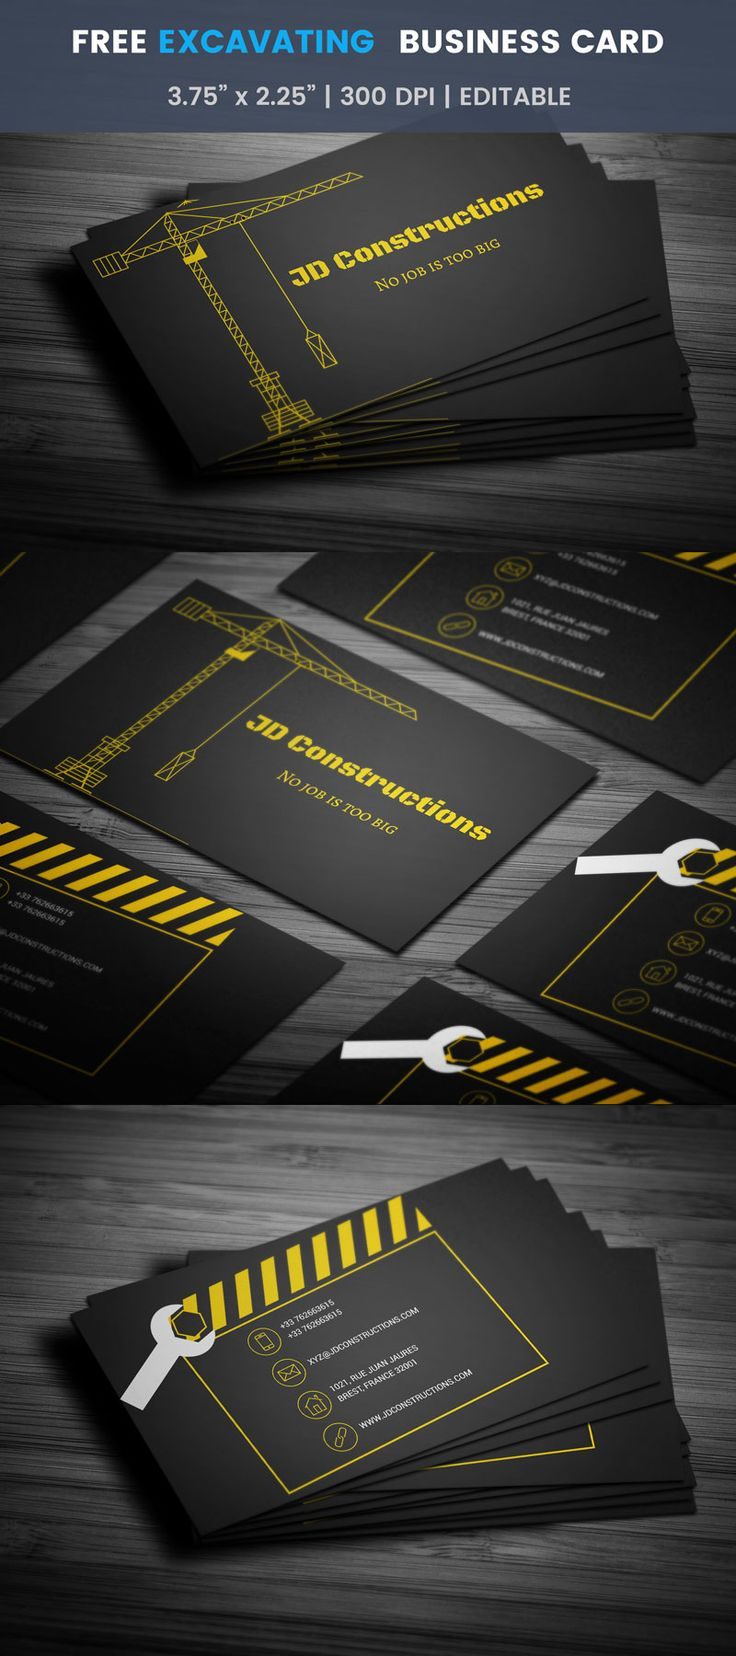 Excavating Business Card - Full Preview